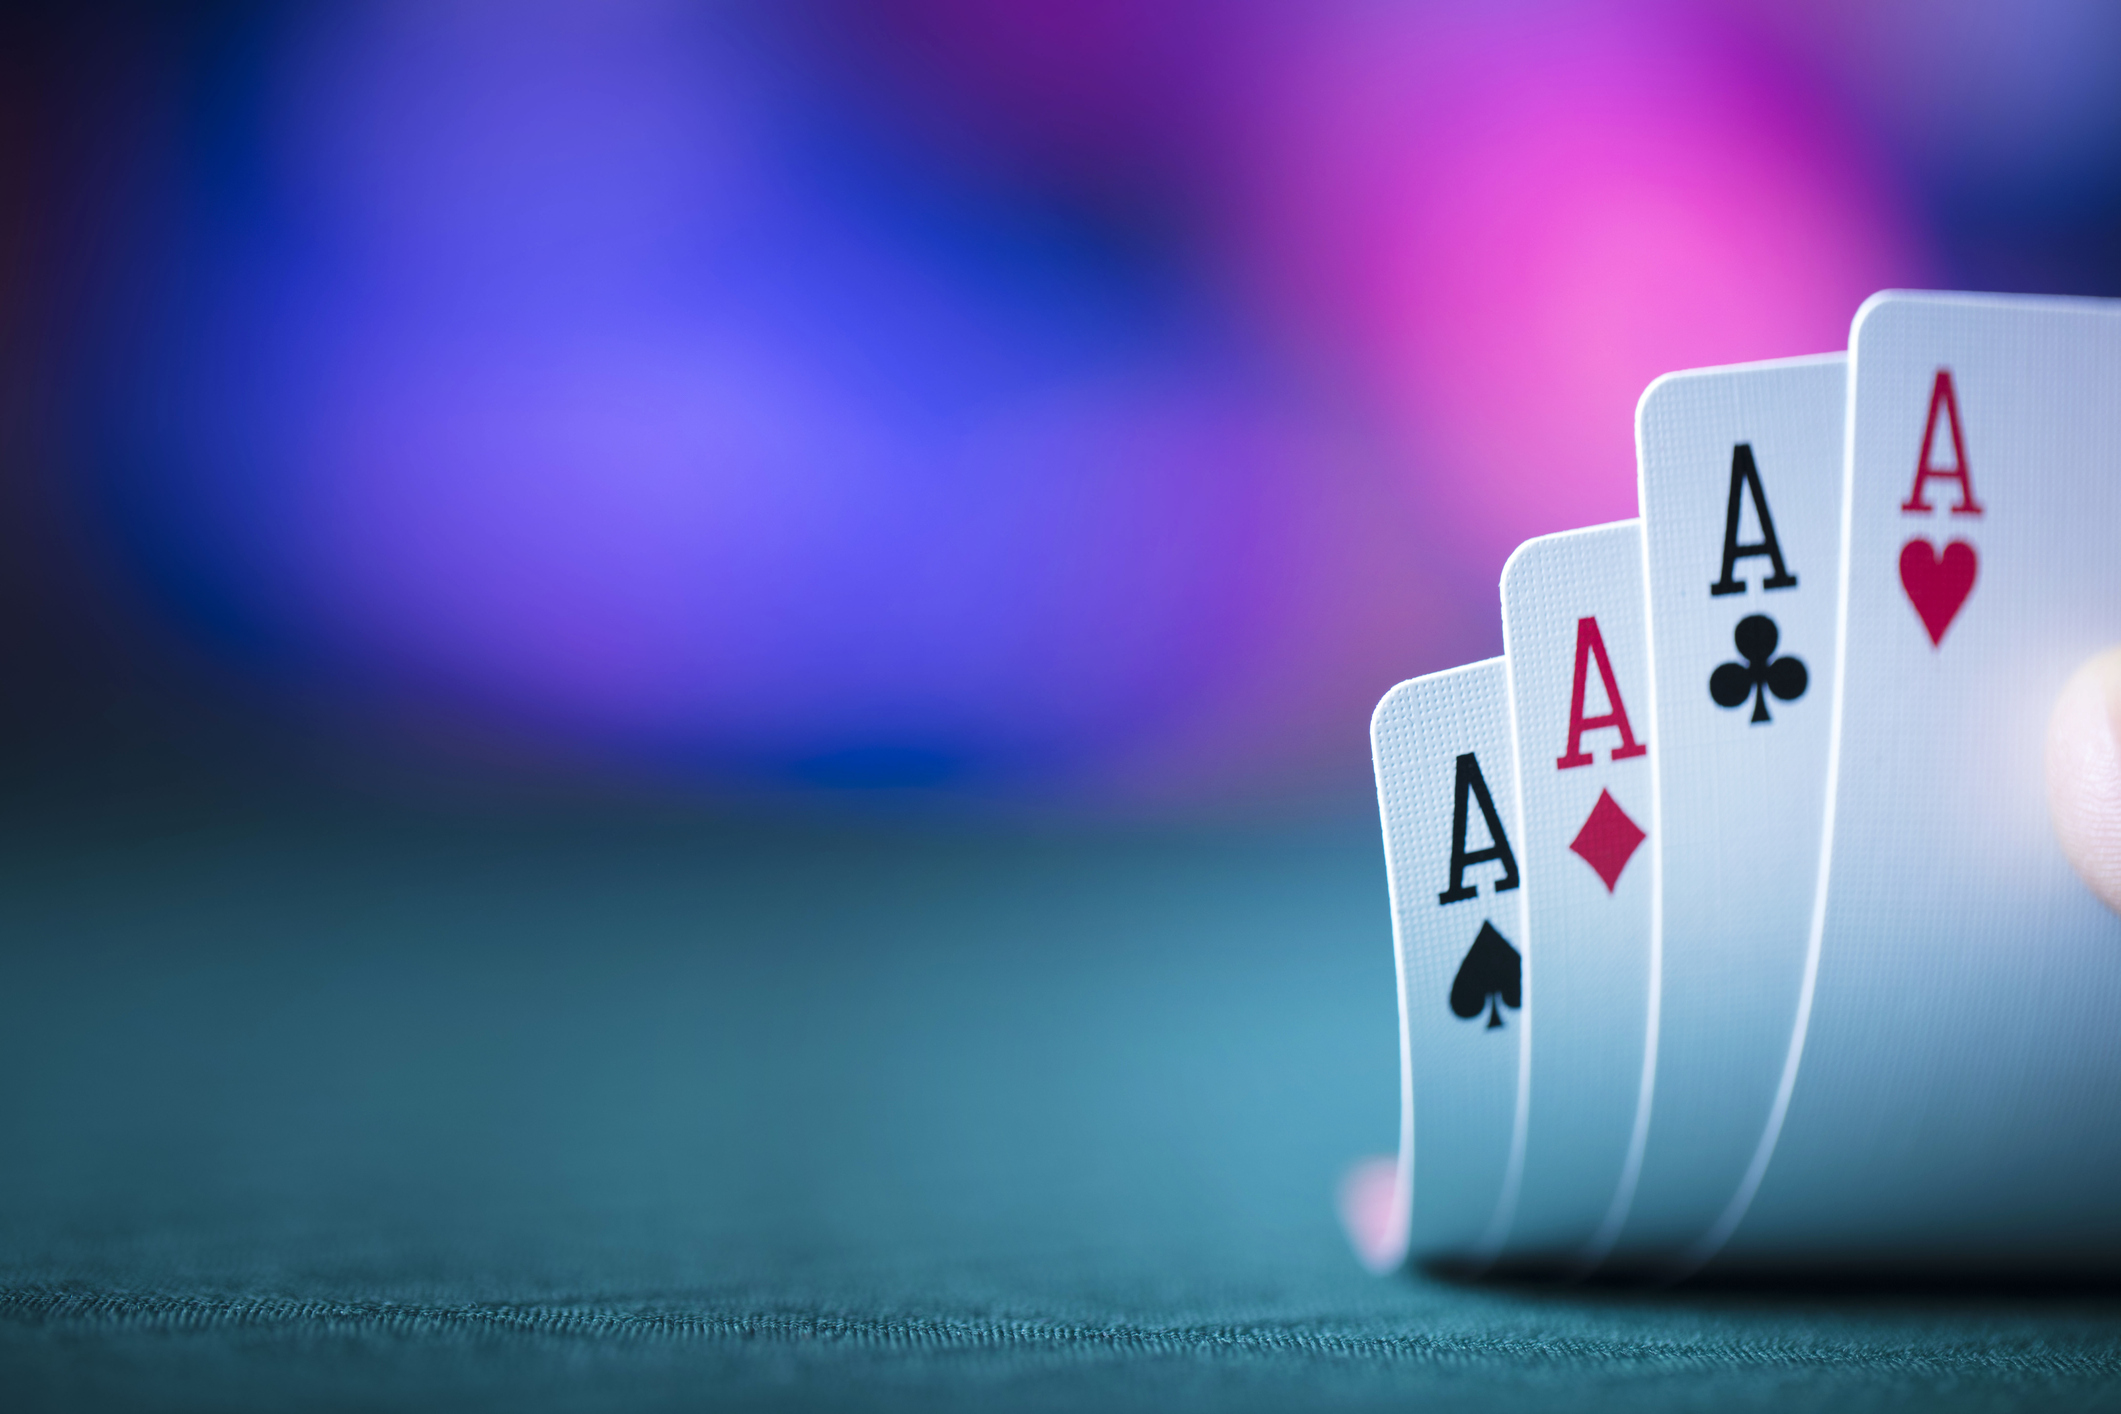 casino theme, poker game, aces